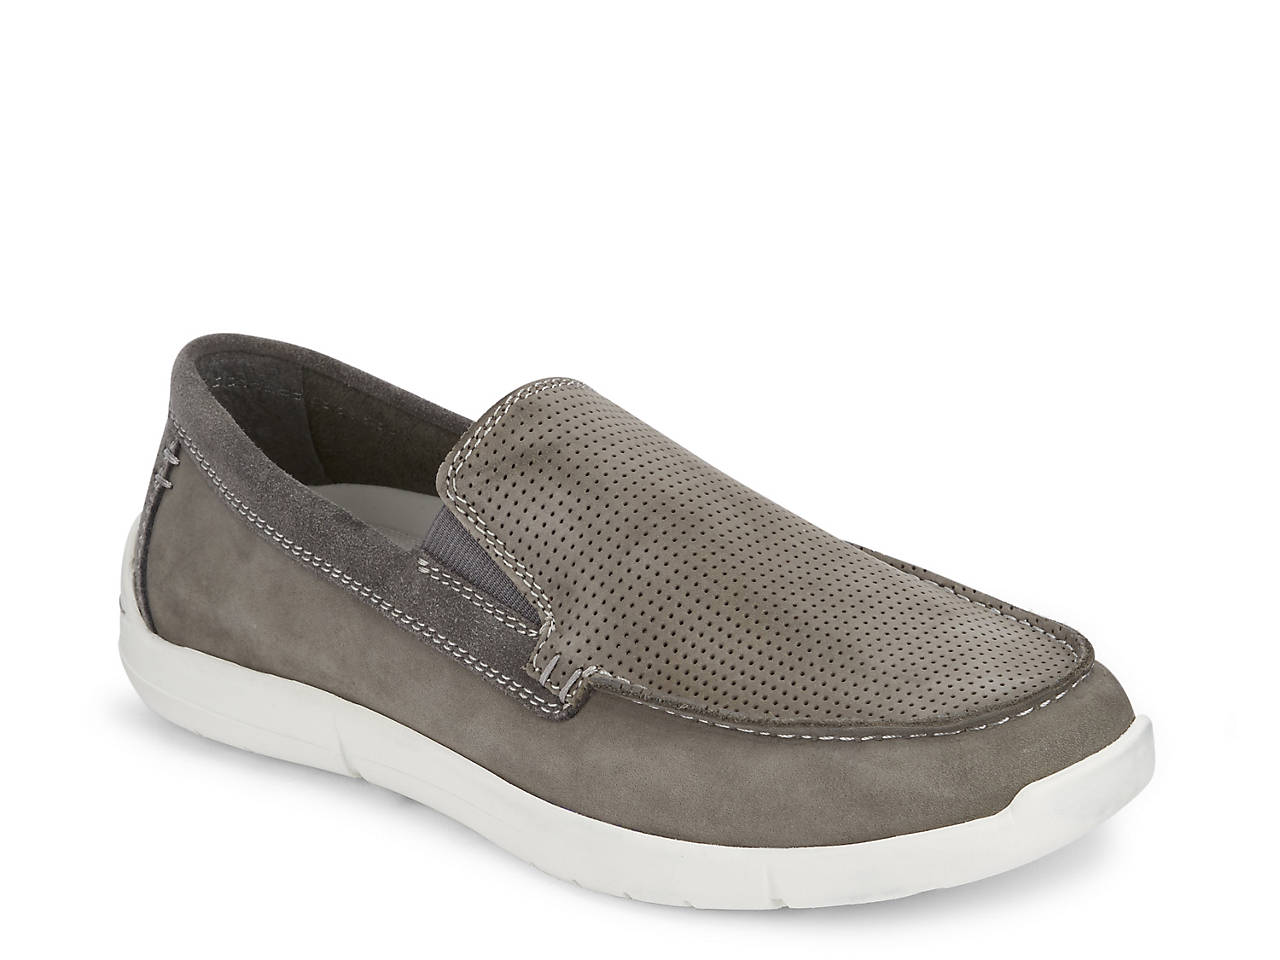 Pay With Paypal For Sale Dockers Alcove Slip-On(Men's) -Oyster Leather Cheap Sale Eastbay Store Sale Online Free Shipping Get To Buy Cheap Manchester Great Sale 65U41DKBwx